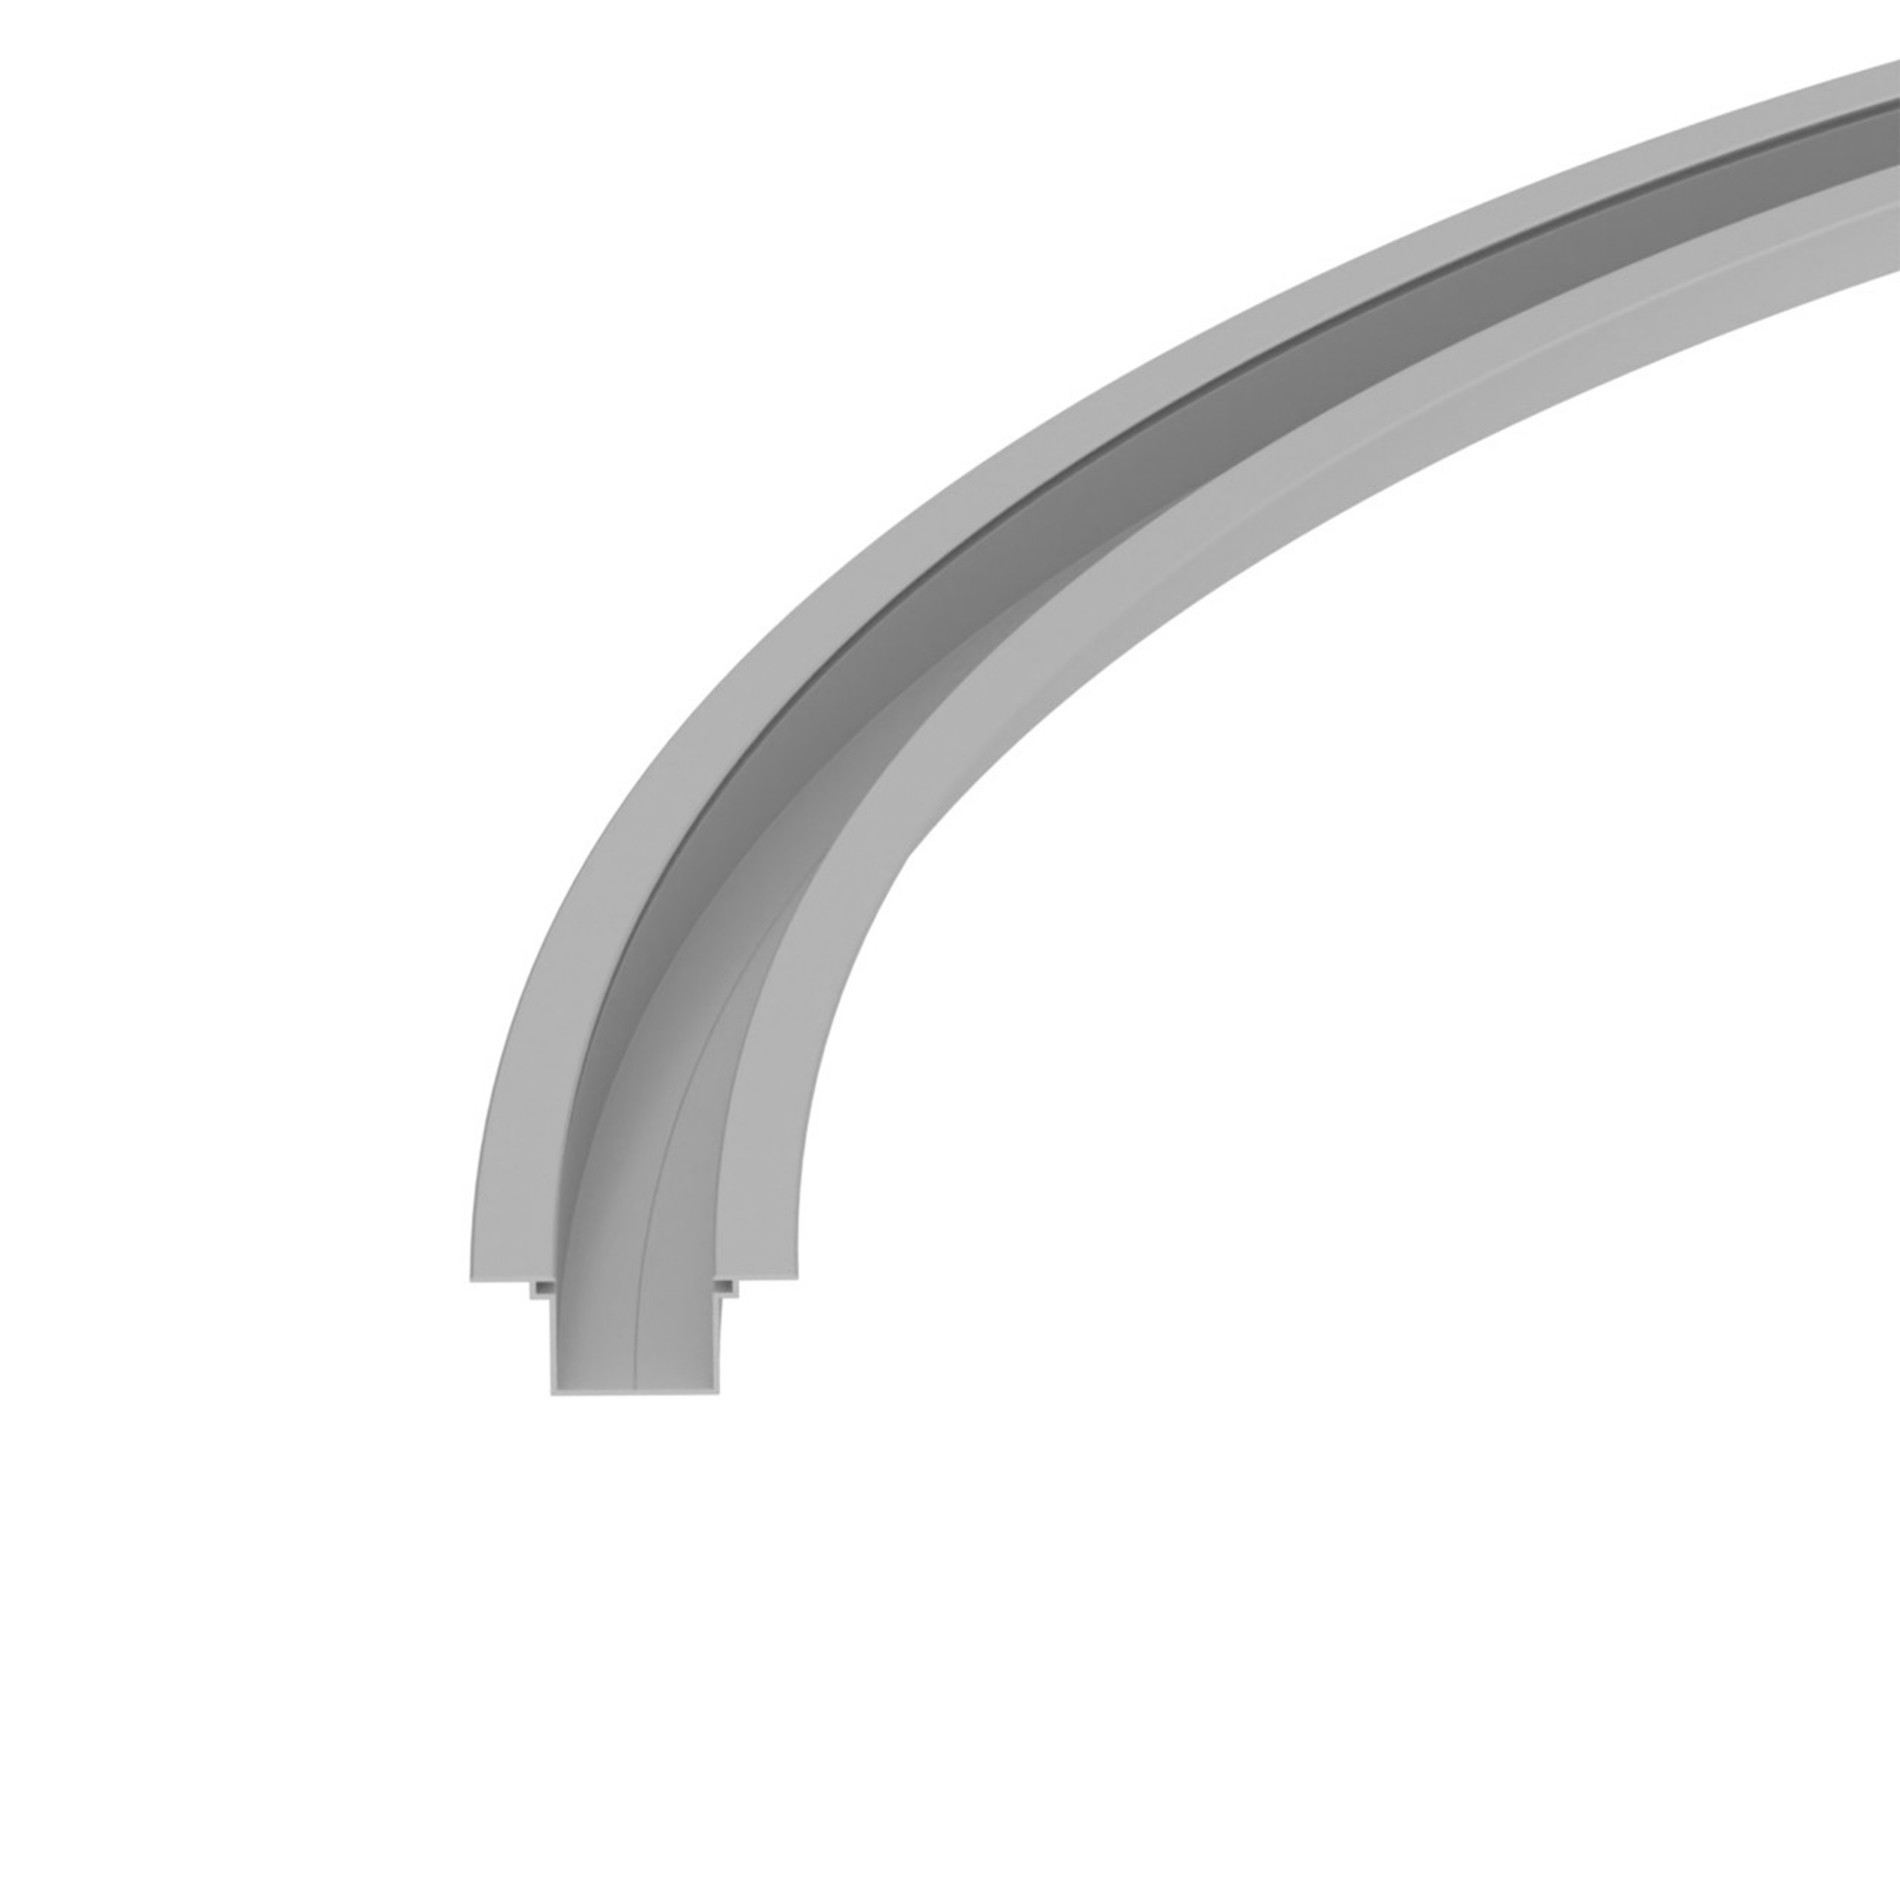 ER34 Recessed curved led profile 34x27mm